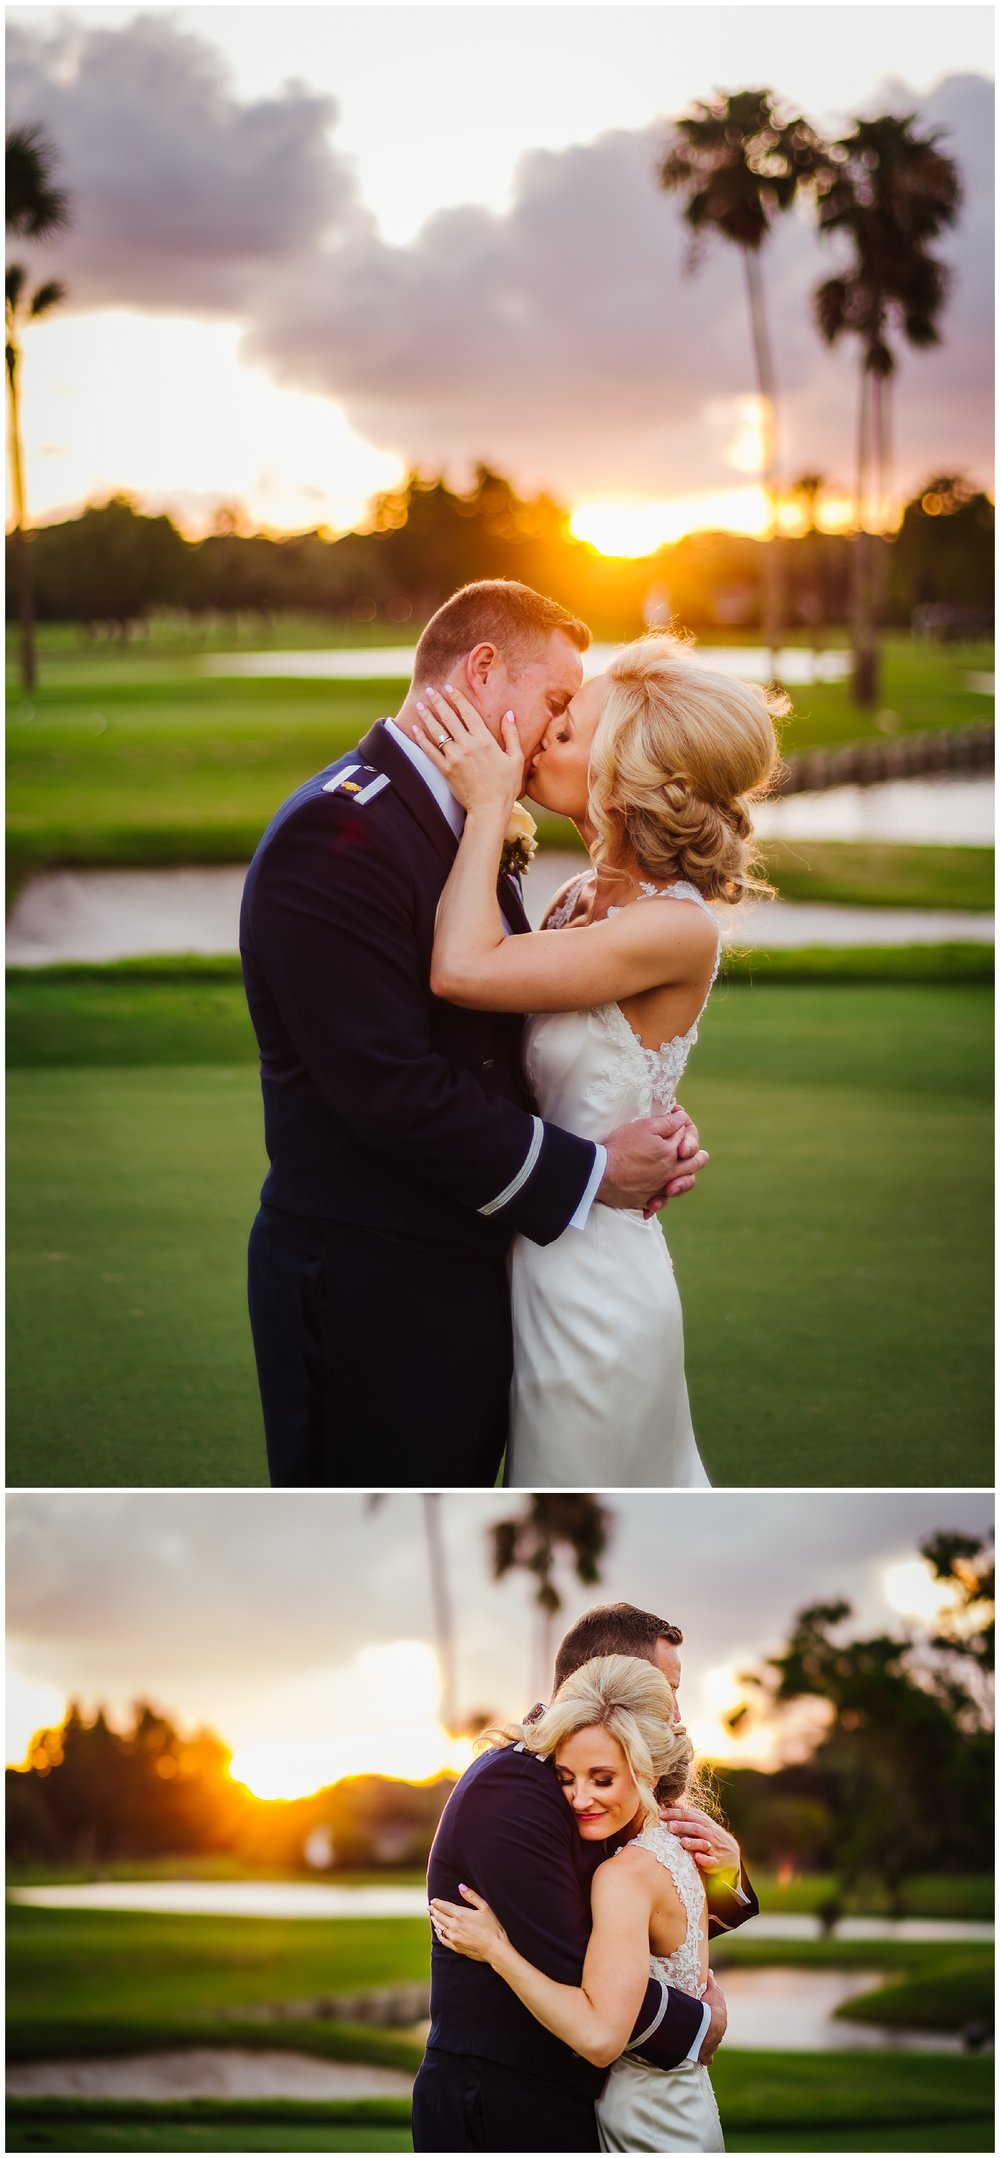 tampa-wedding-photographer-sleeves-palma-ceia-country-club-golf-course-sunset-luxury_0100.jpg